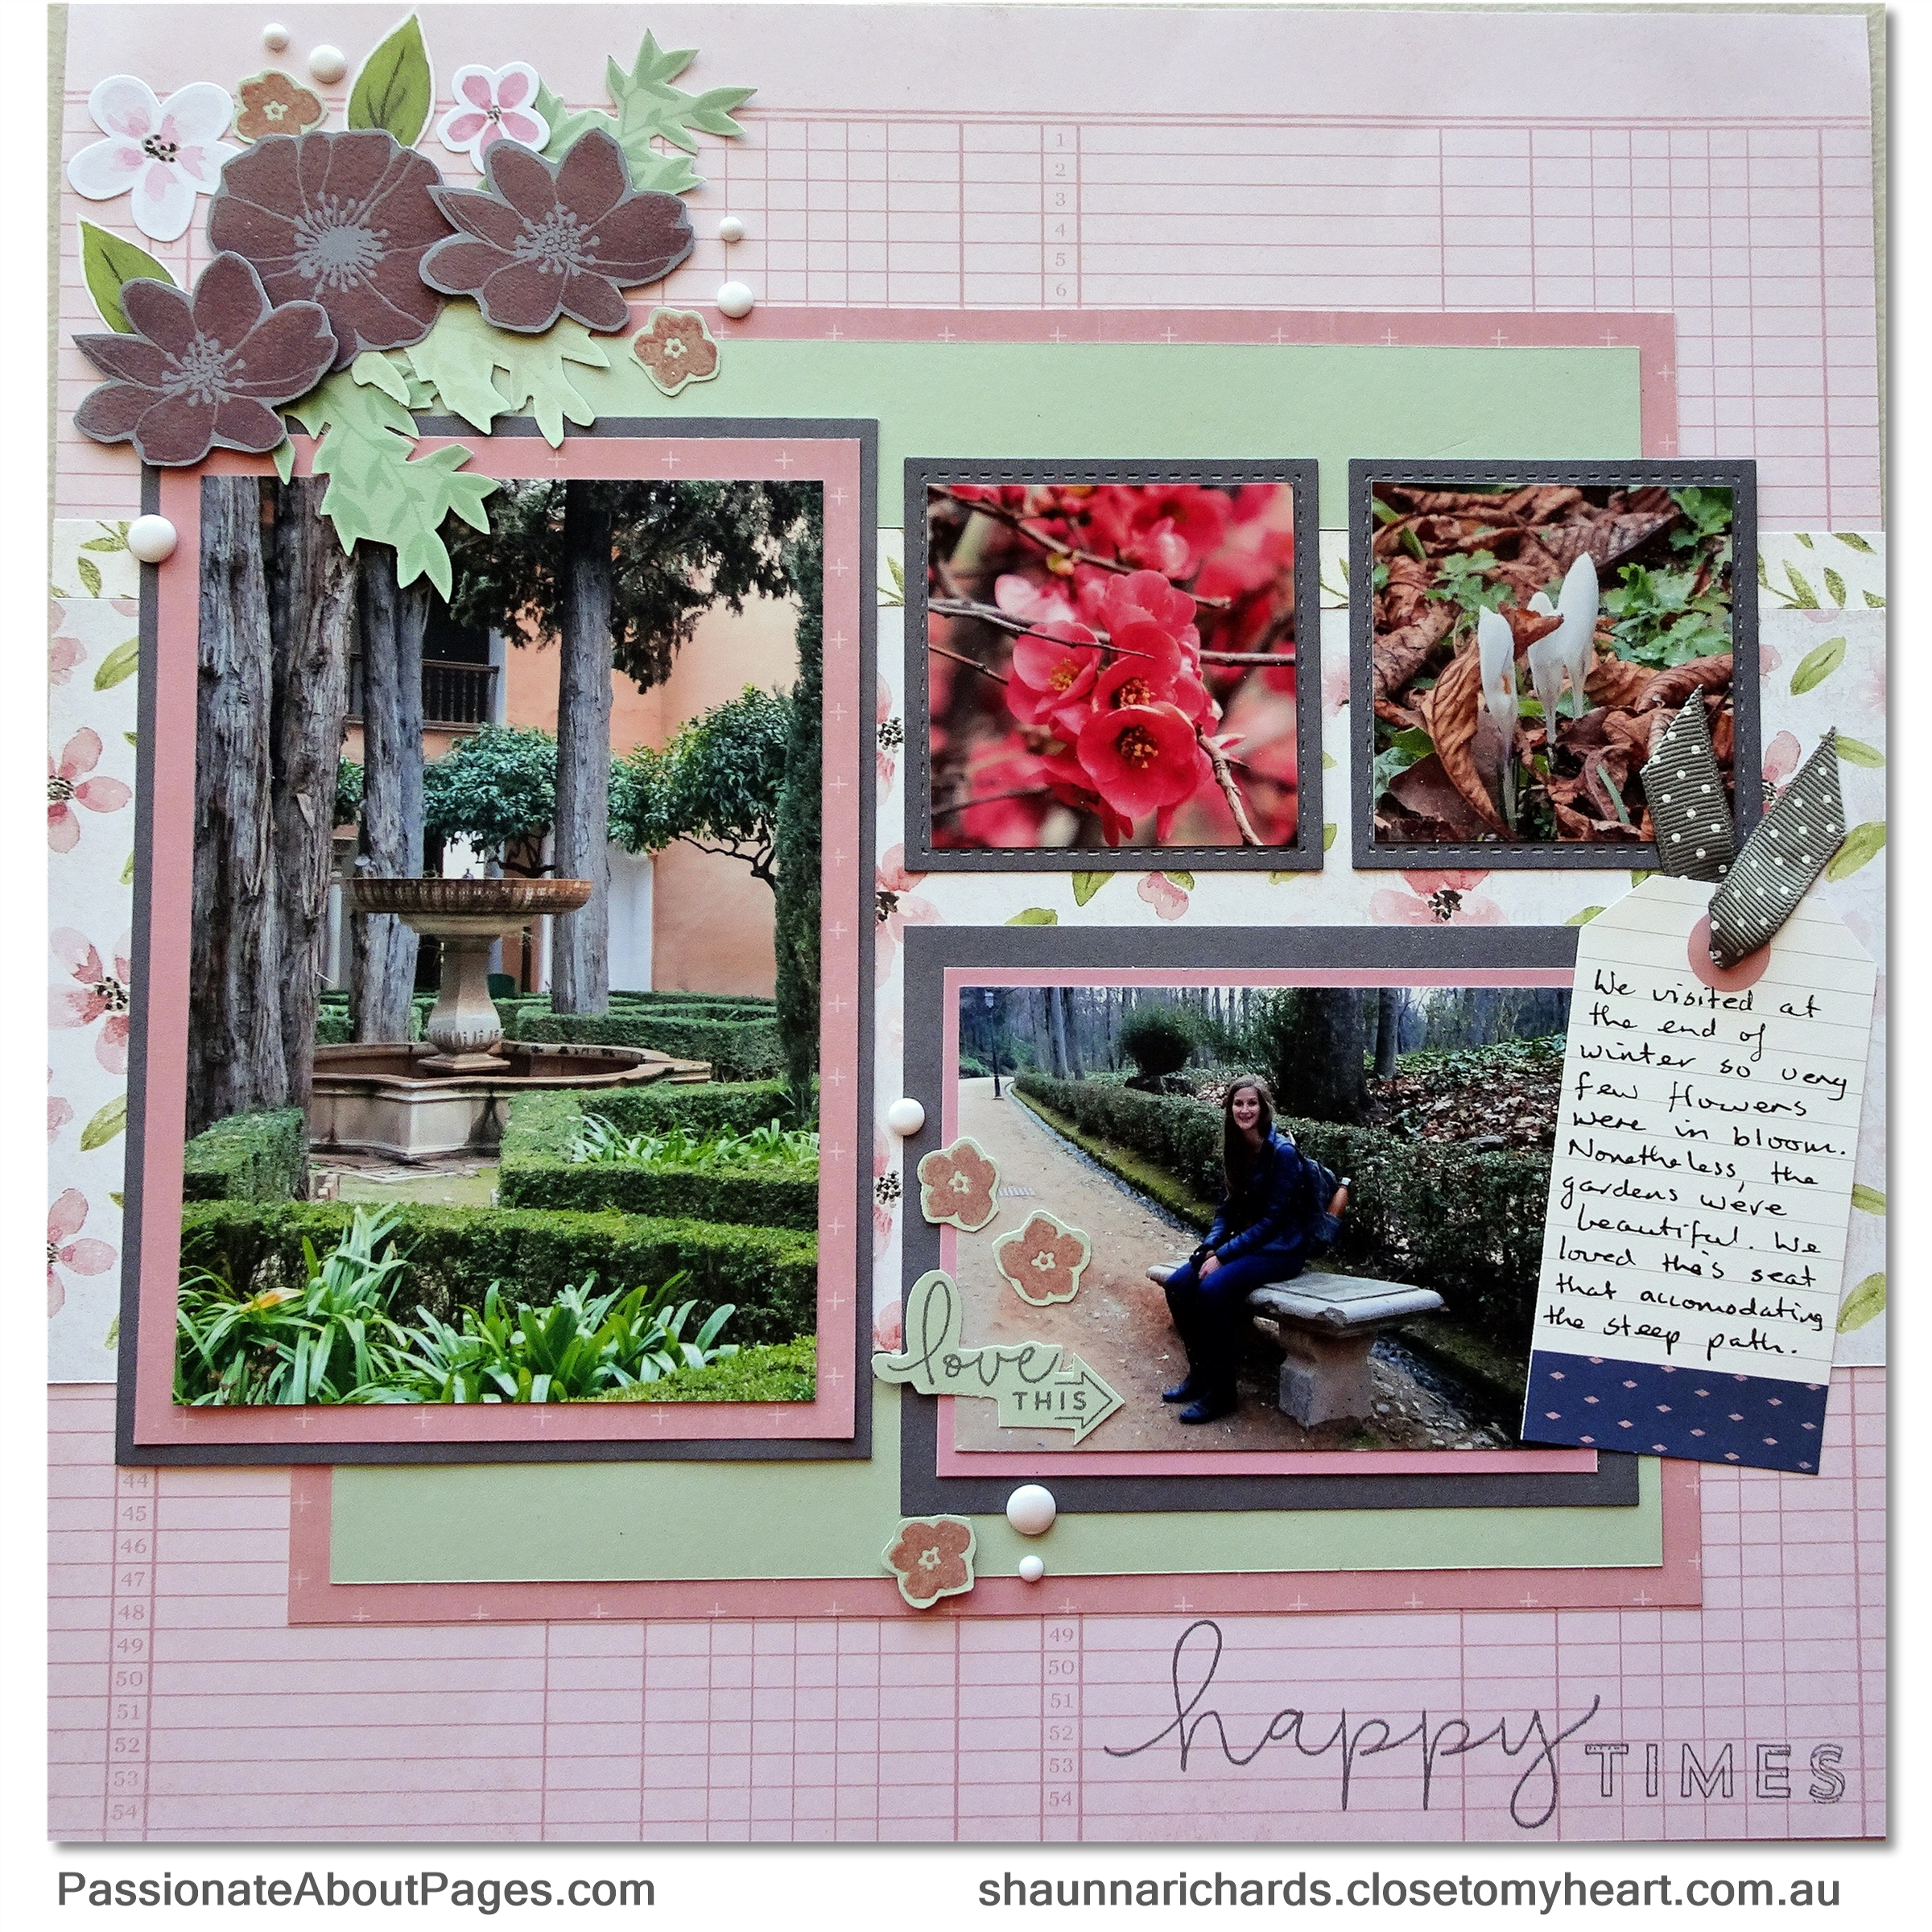 Tell your story using S1904 Love So Sweet- April's 2019's Stamp of the Month from Close To My Heart.  Perfect for scrapbooks and cards. Order yours from www.shaunnarichards.ctmh.com.au during April 2019